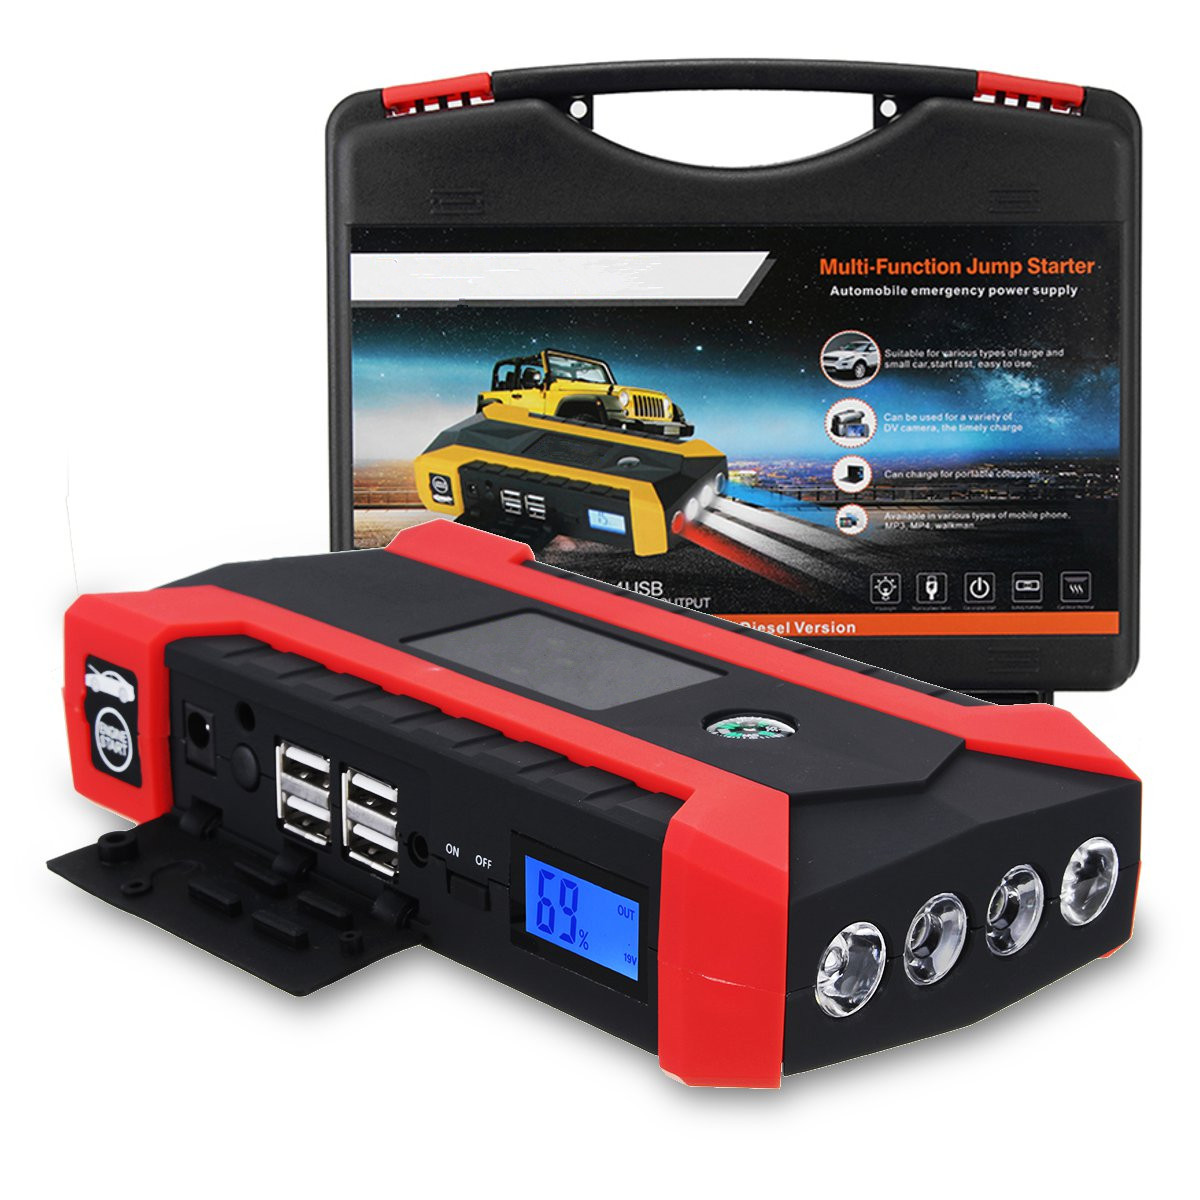 Car Jump Starter 600A 89800mAh Multifunction Car Charger Battery Jump Starter 4USB LED Light Auto Emergency Mobile Power BankCar Jump Starter 600A 89800mAh Multifunction Car Charger Battery Jump Starter 4USB LED Light Auto Emergency Mobile Power Bank